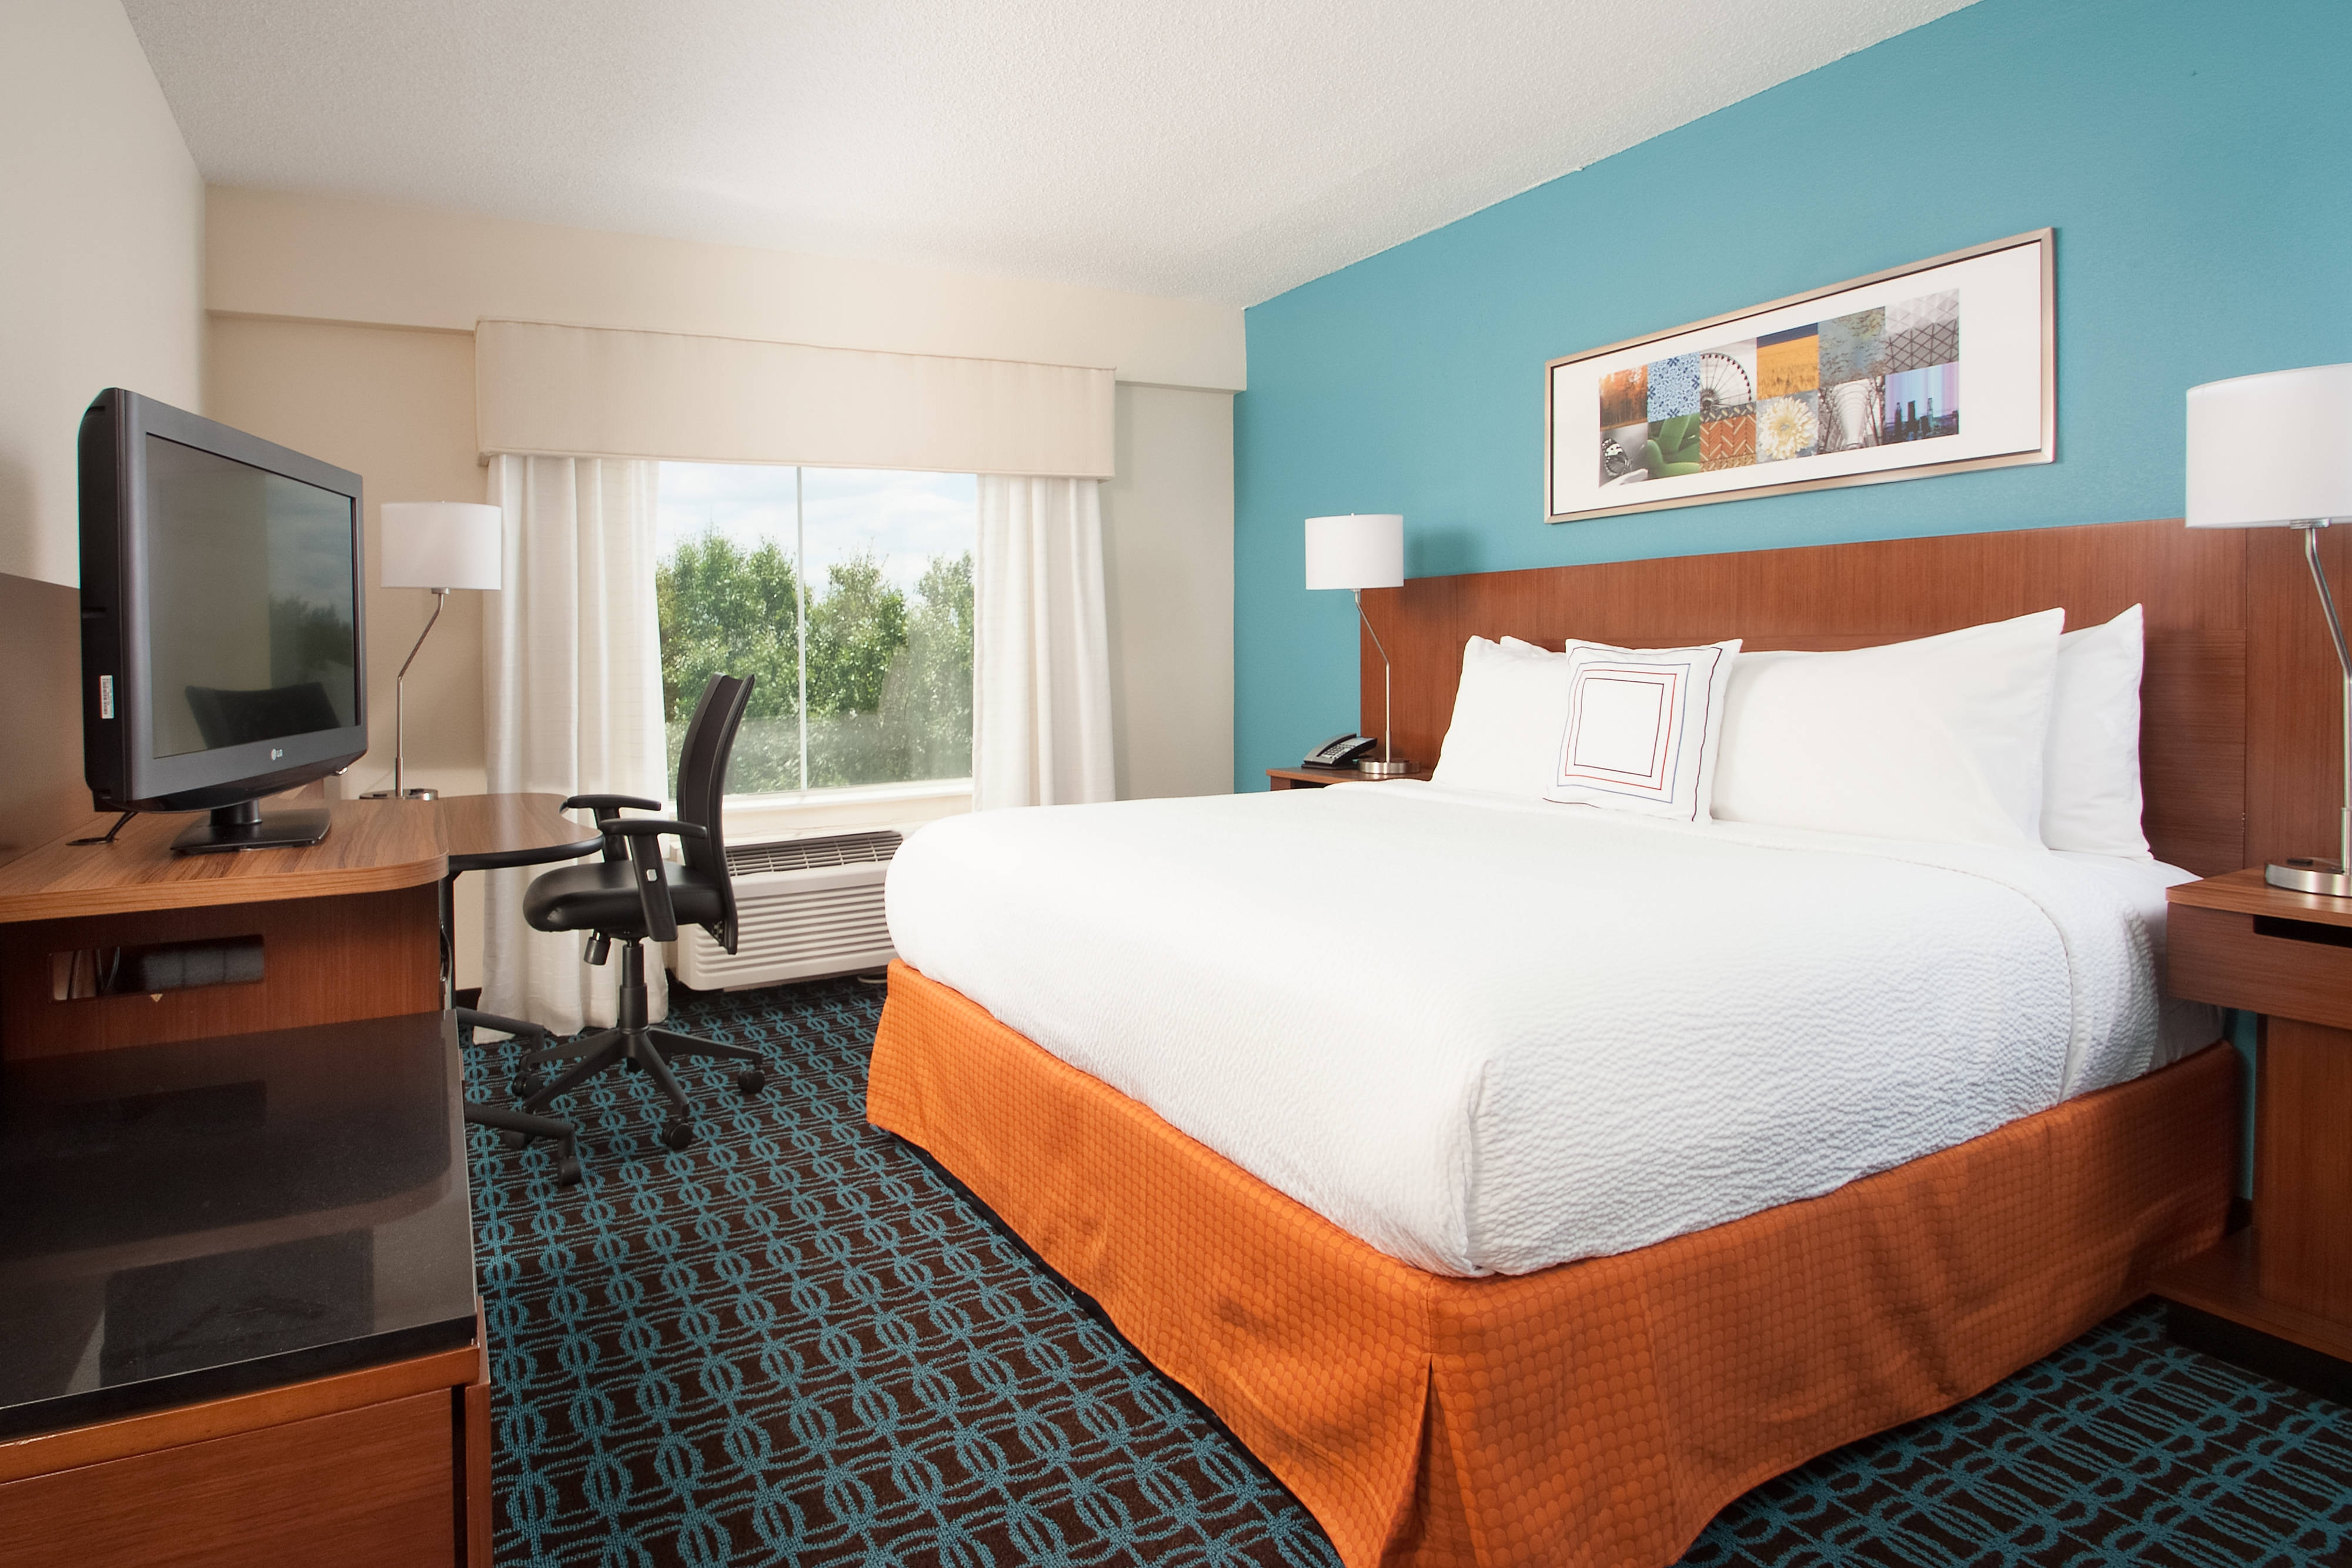 luxury hotels near the Charlotte airport with free WIFI